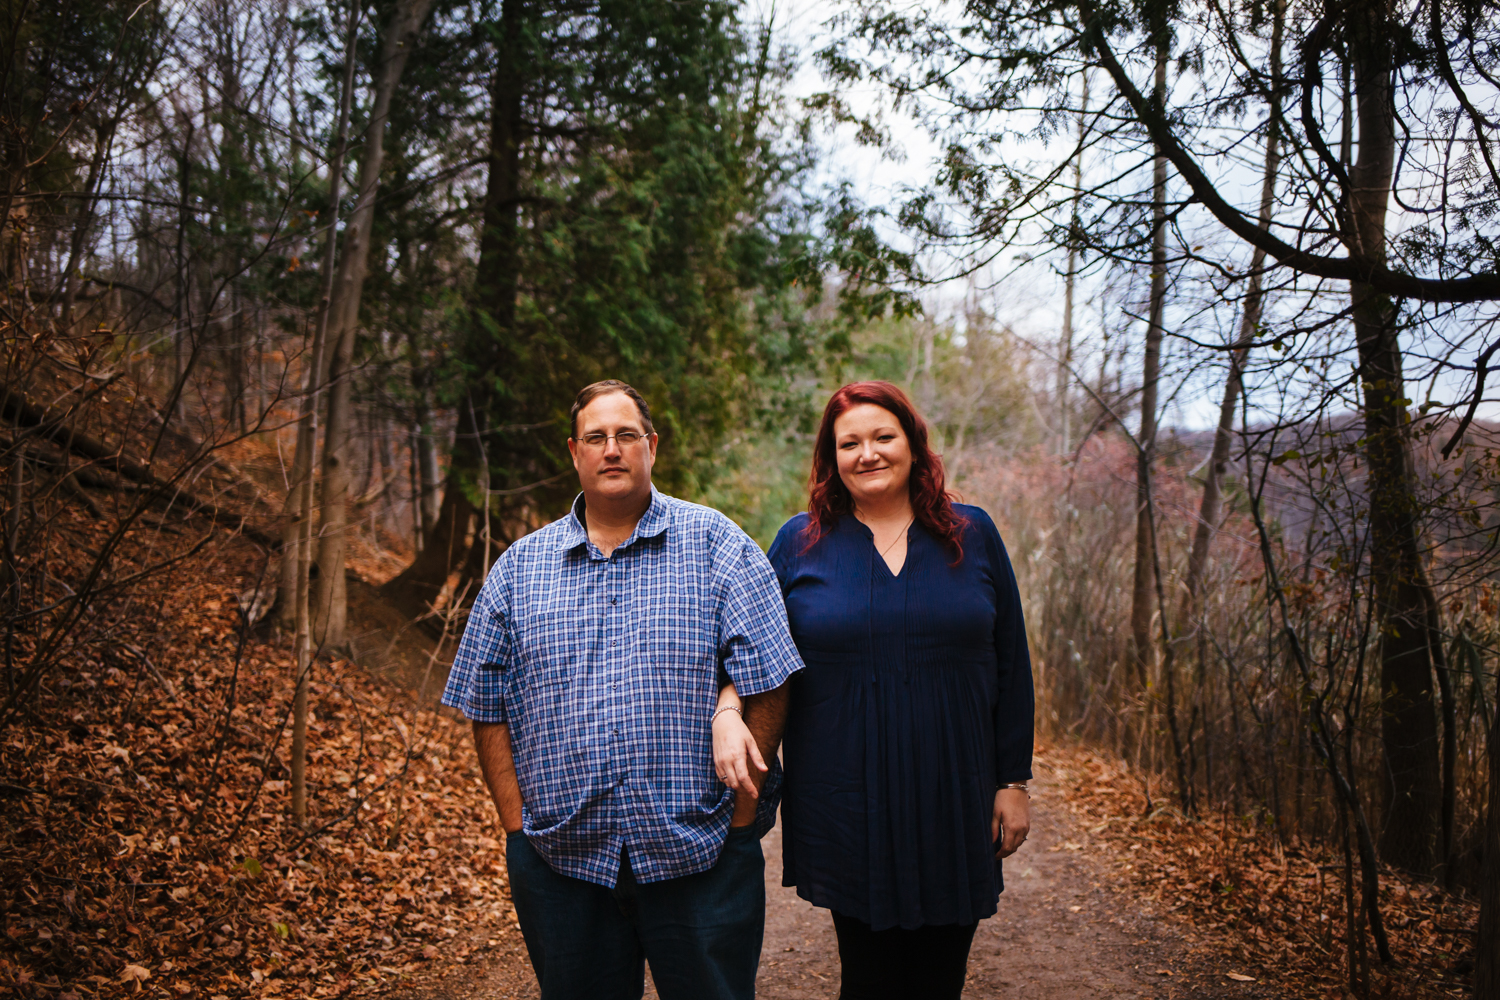 Engagement photograph of man and woman wearing navy blue shirts. They are in the woods surrounded by trees.